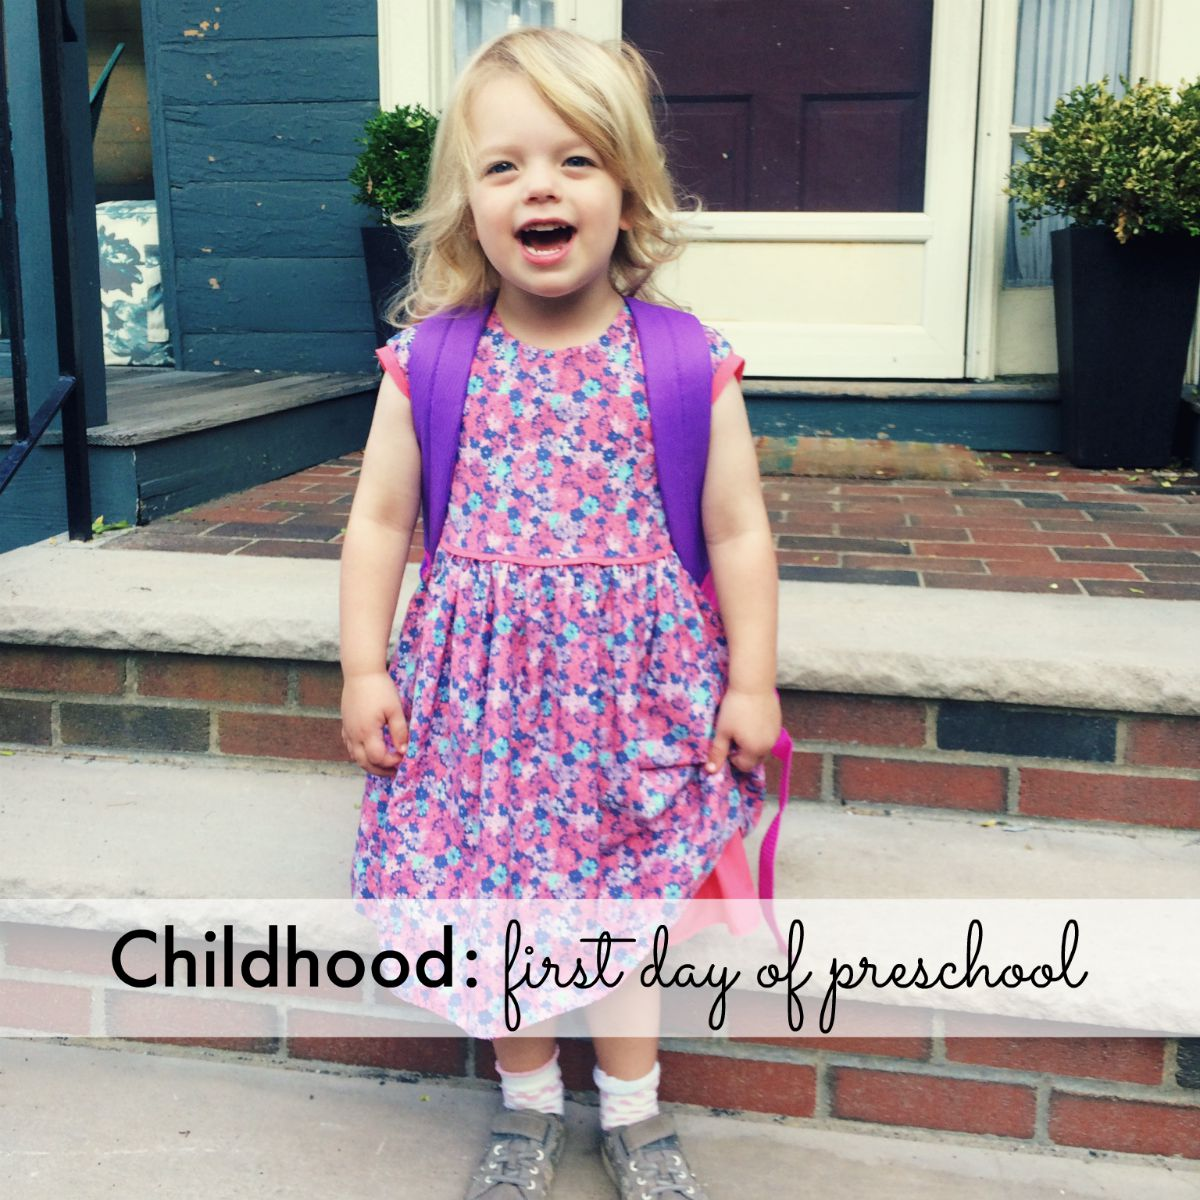 Childhood: first day of preschool